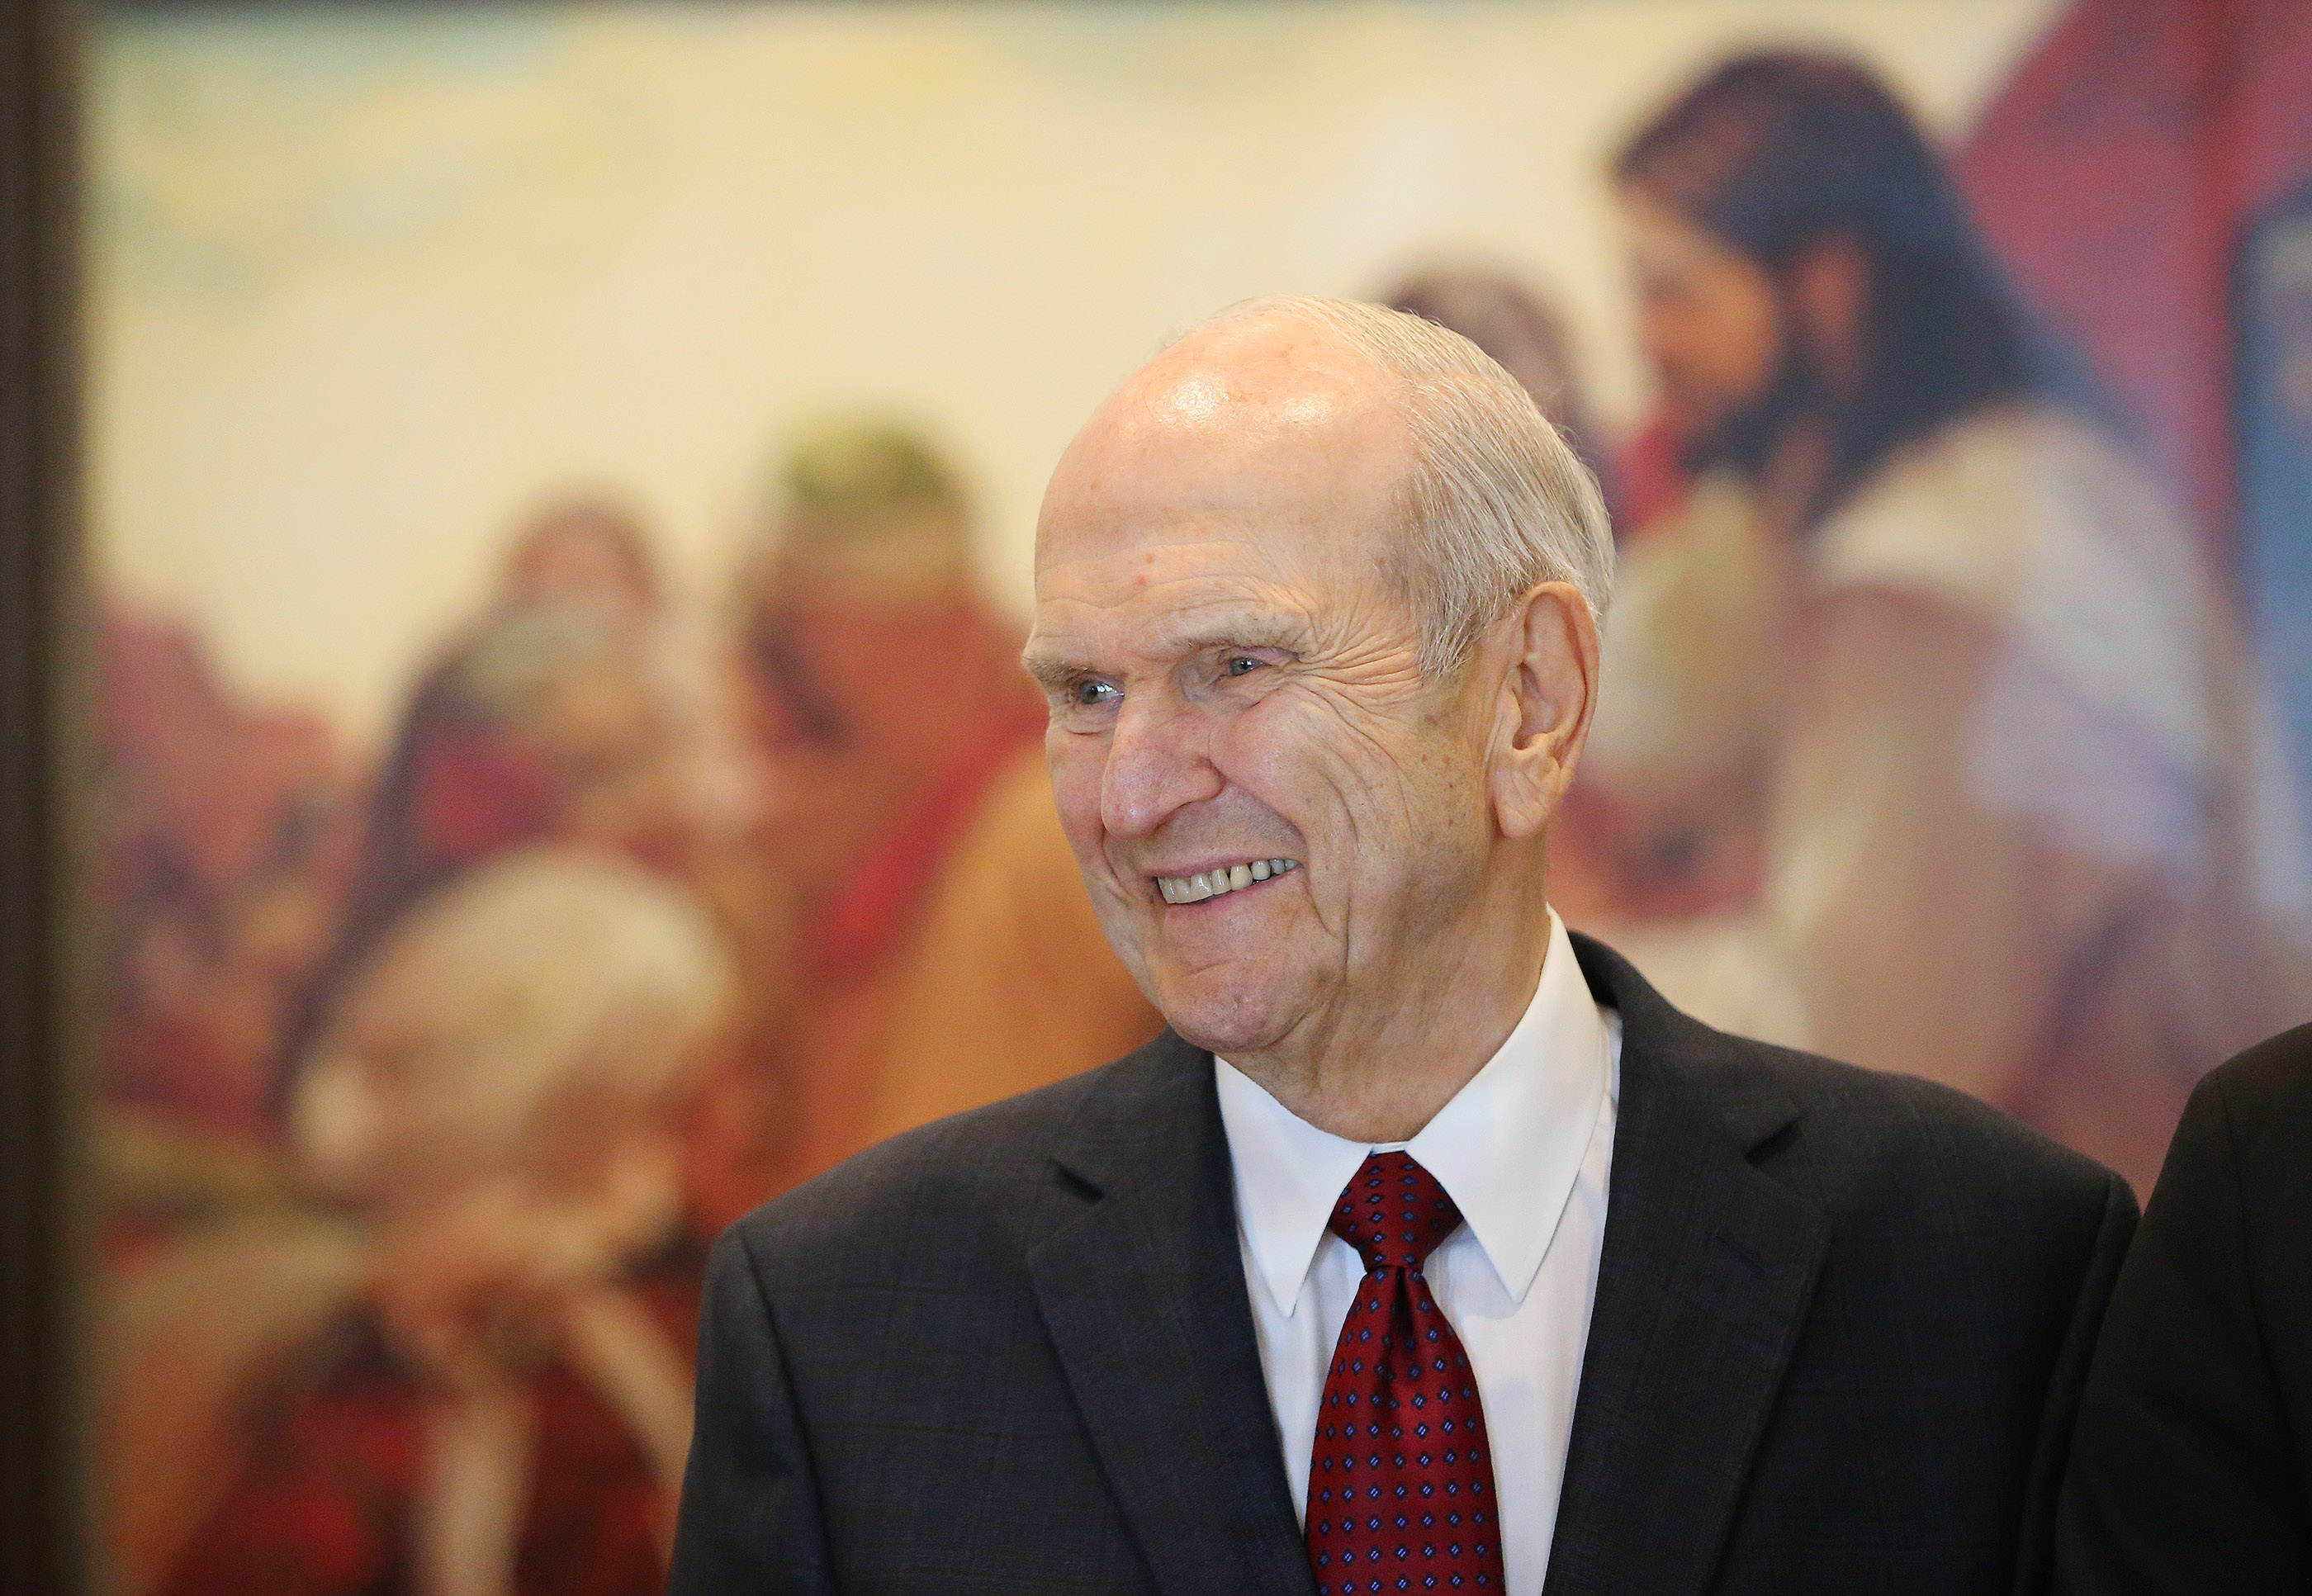 President Russell M. Nelson smiles while having lunch with local dignitaries in Concepcion, Chile, on Saturday, Oct. 27, 2018.